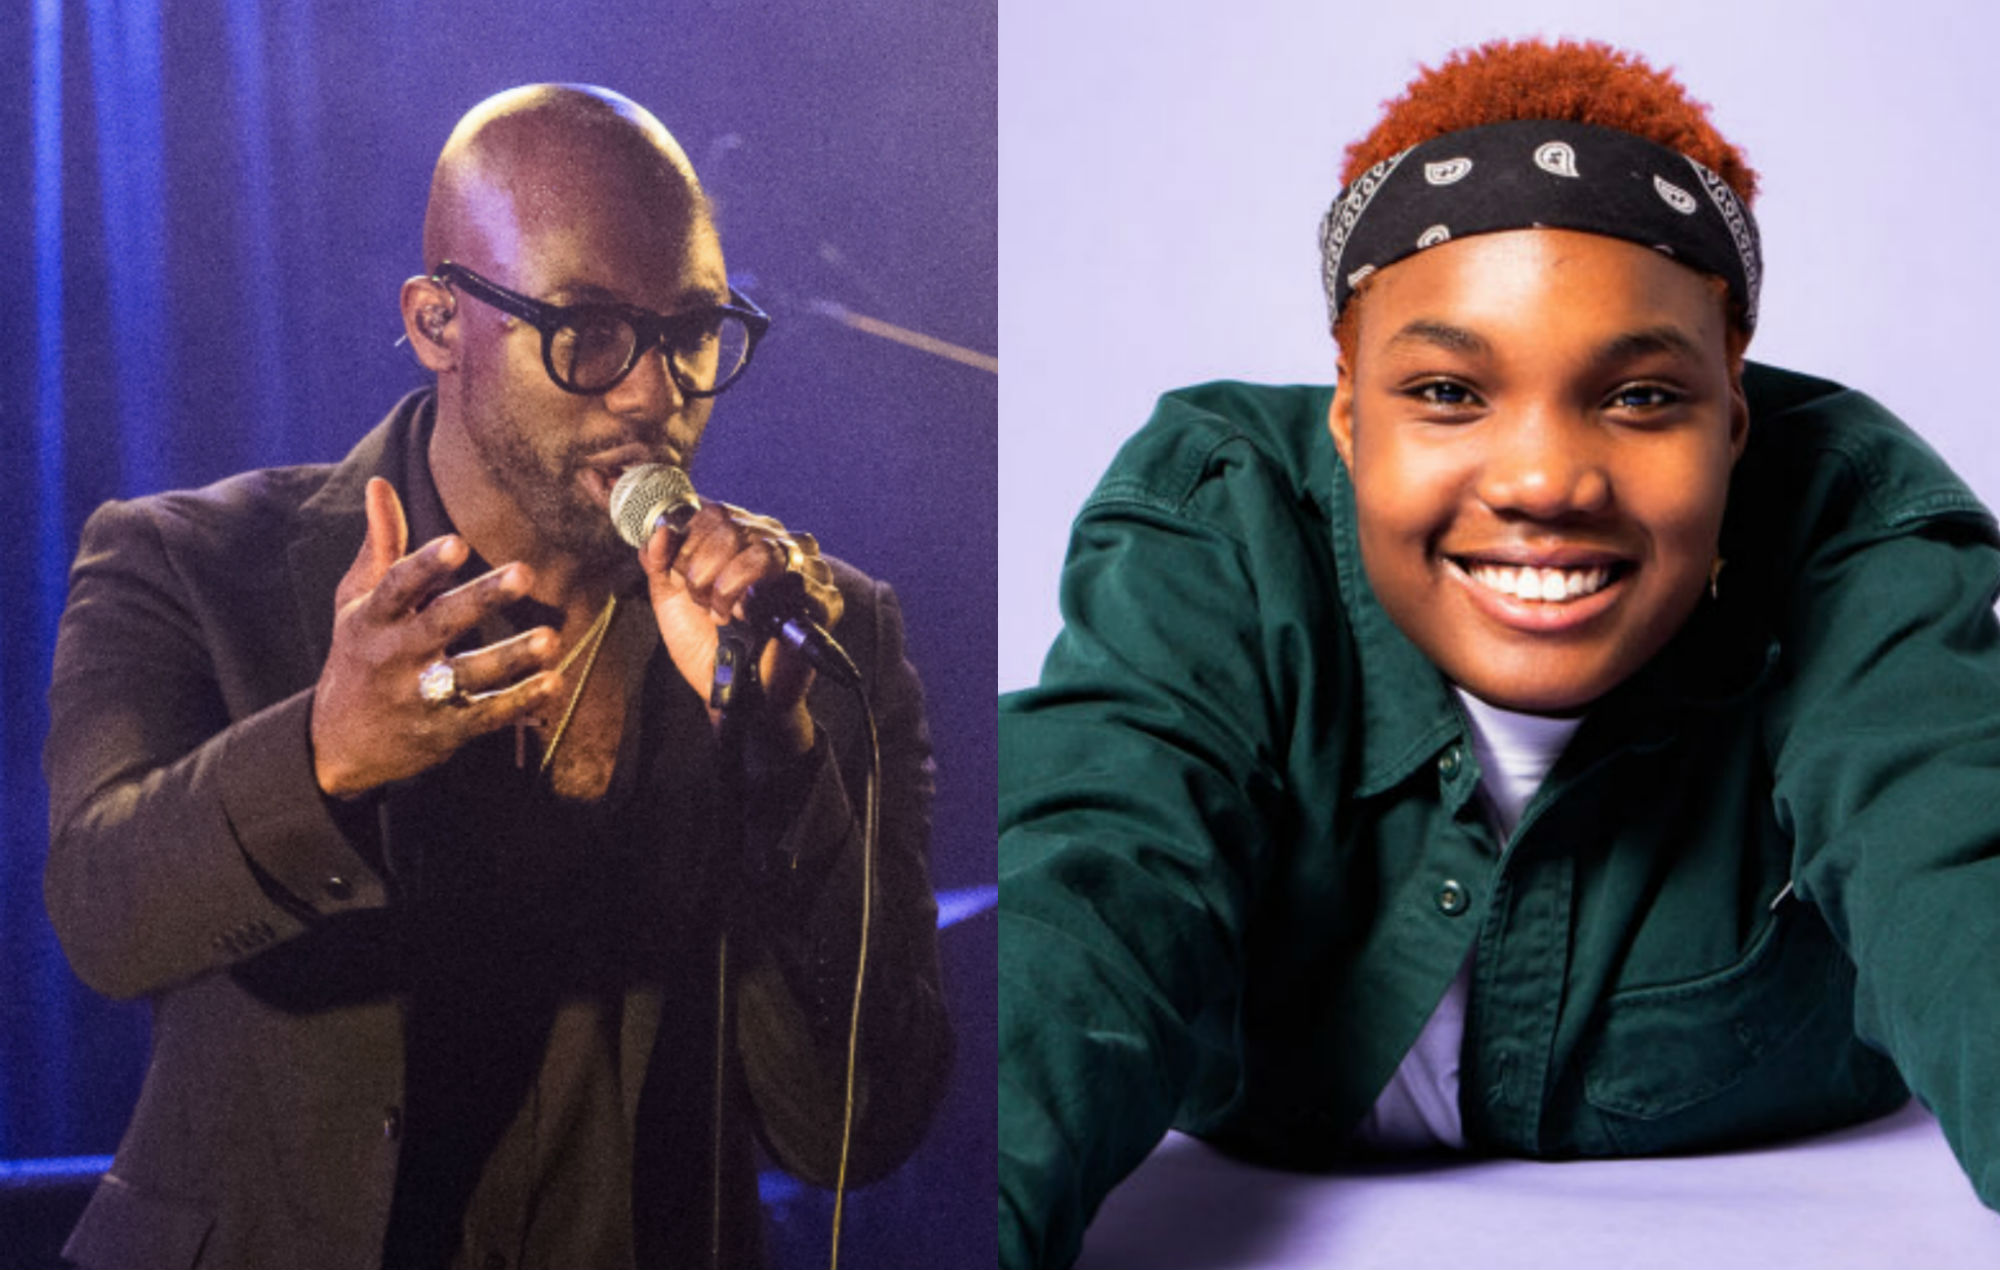 Ghostpoet and Arlo Parks among 100 artists to be added to The Great Escape 2020 line-up